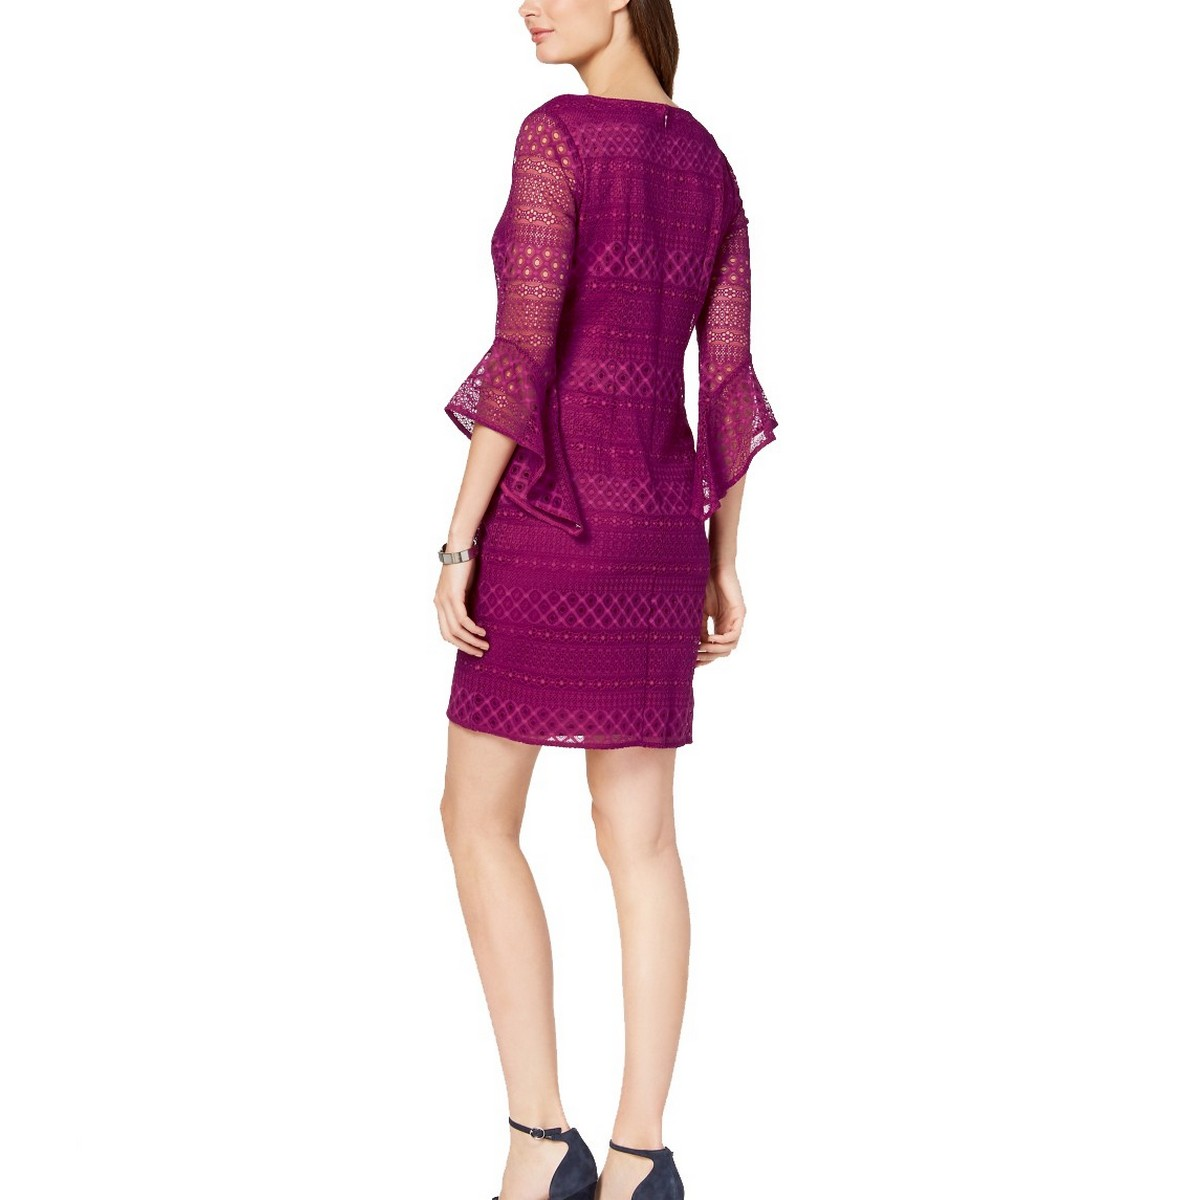 ALFANI-NEW-Women-039-s-Lace-3-4-Bell-sleeve-V-Neck-Sheath-Dress-TEDO thumbnail 5